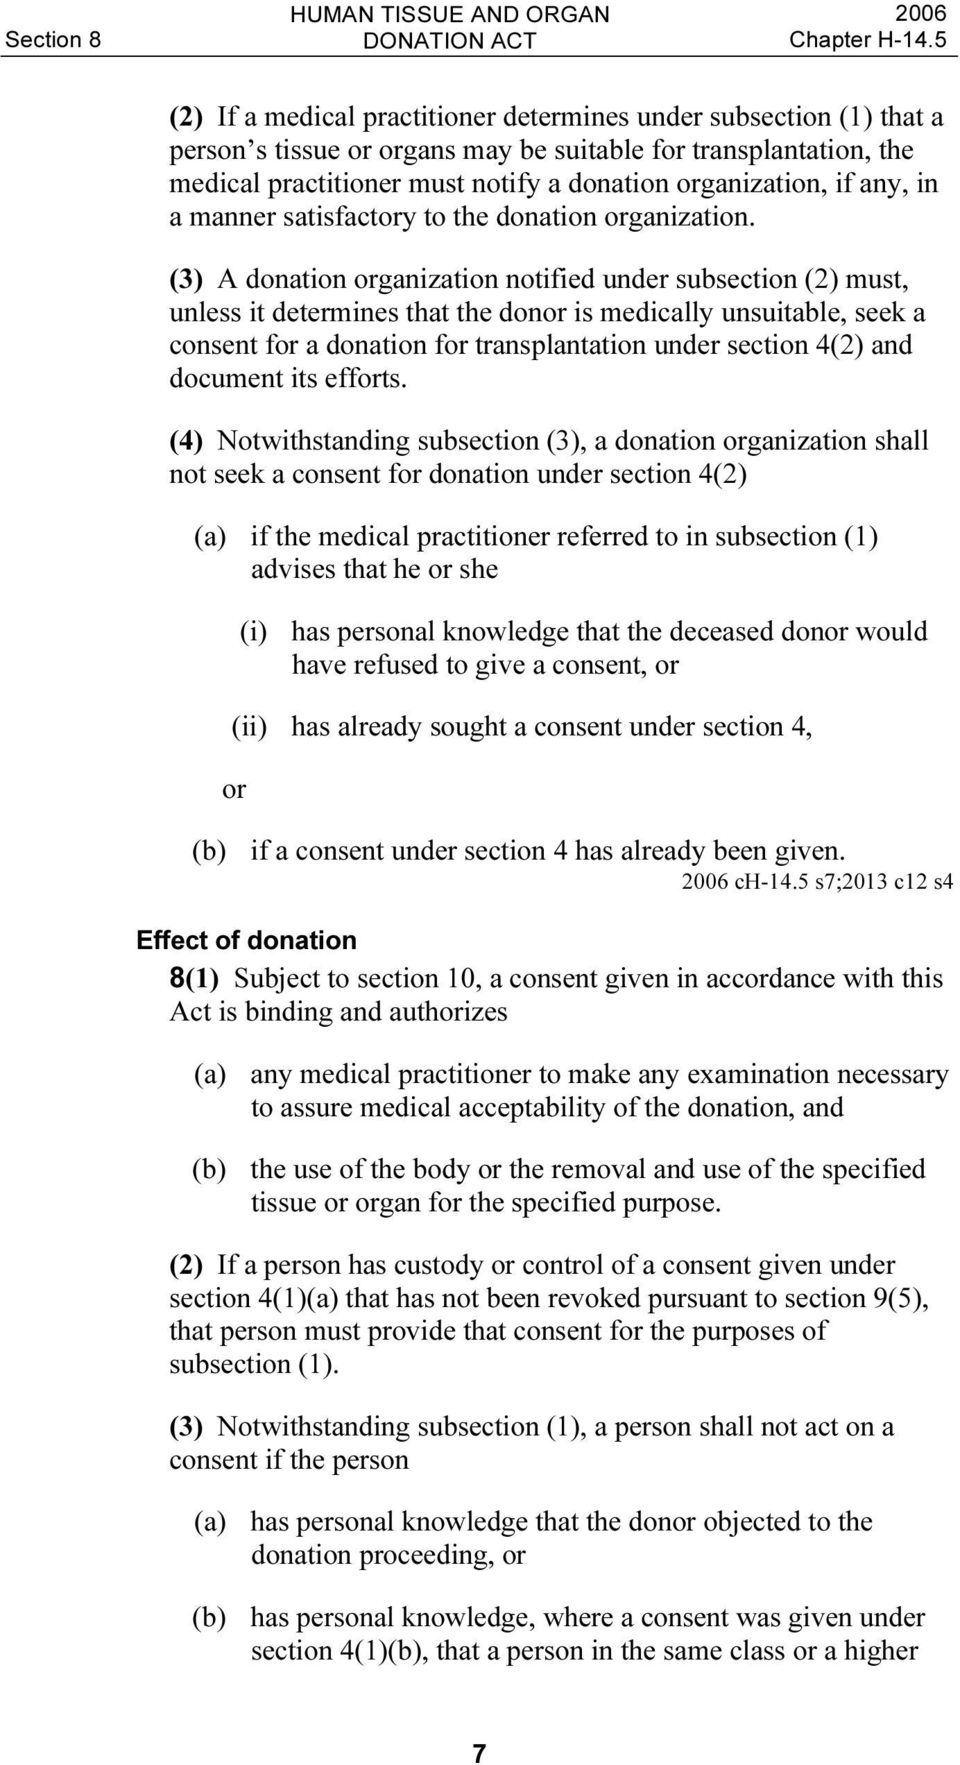 (3) A donation organization notified under subsection (2) must, unless it determines that the donor is medically unsuitable, seek a consent for a donation for transplantation under section 4(2) and